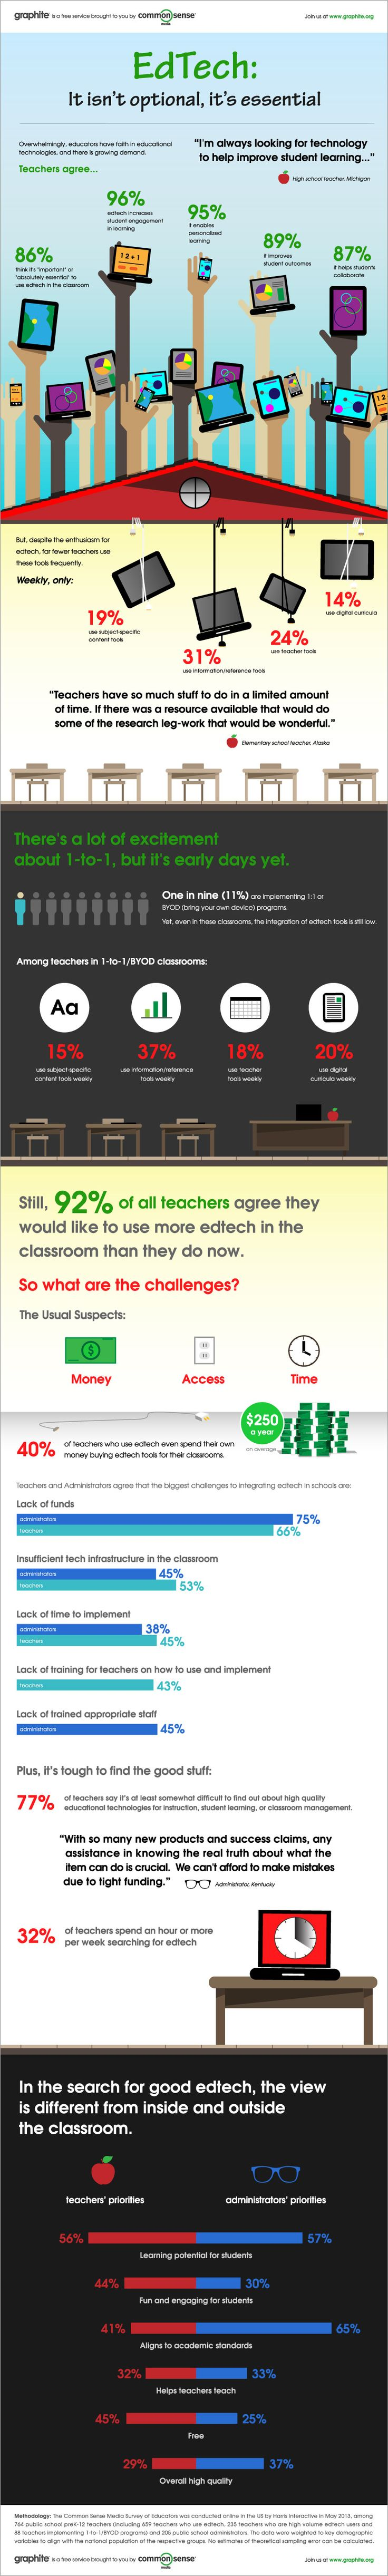 Great #infographic on EdTech from Graphite.